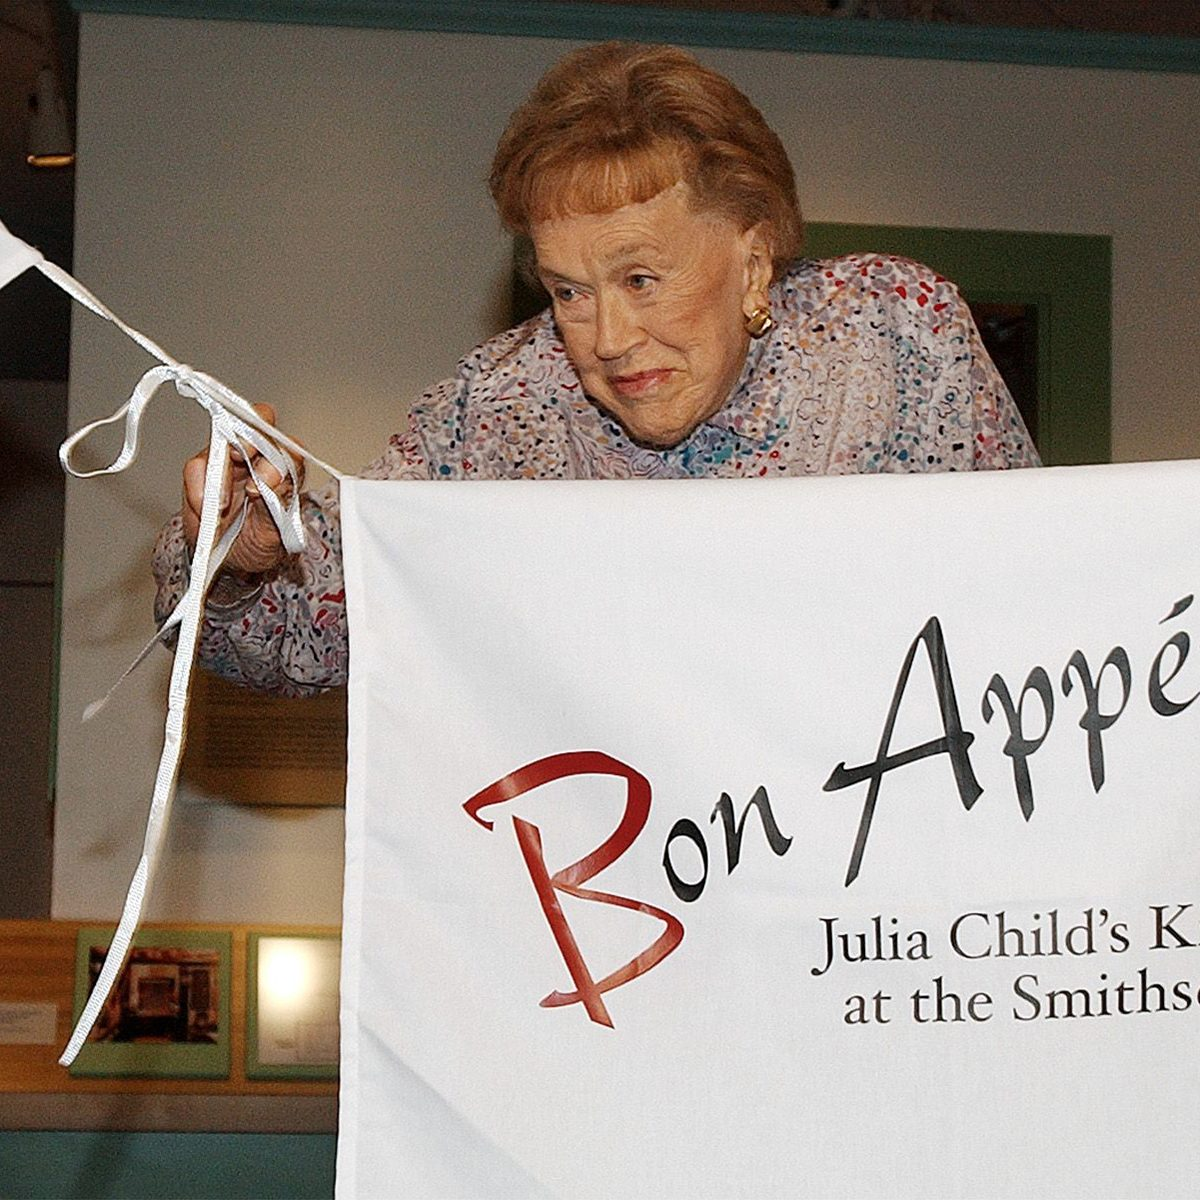 Julia Child pulls on apron strings to open her kitchen exhibition at the Smithsonian's National Museum of American History in Washington